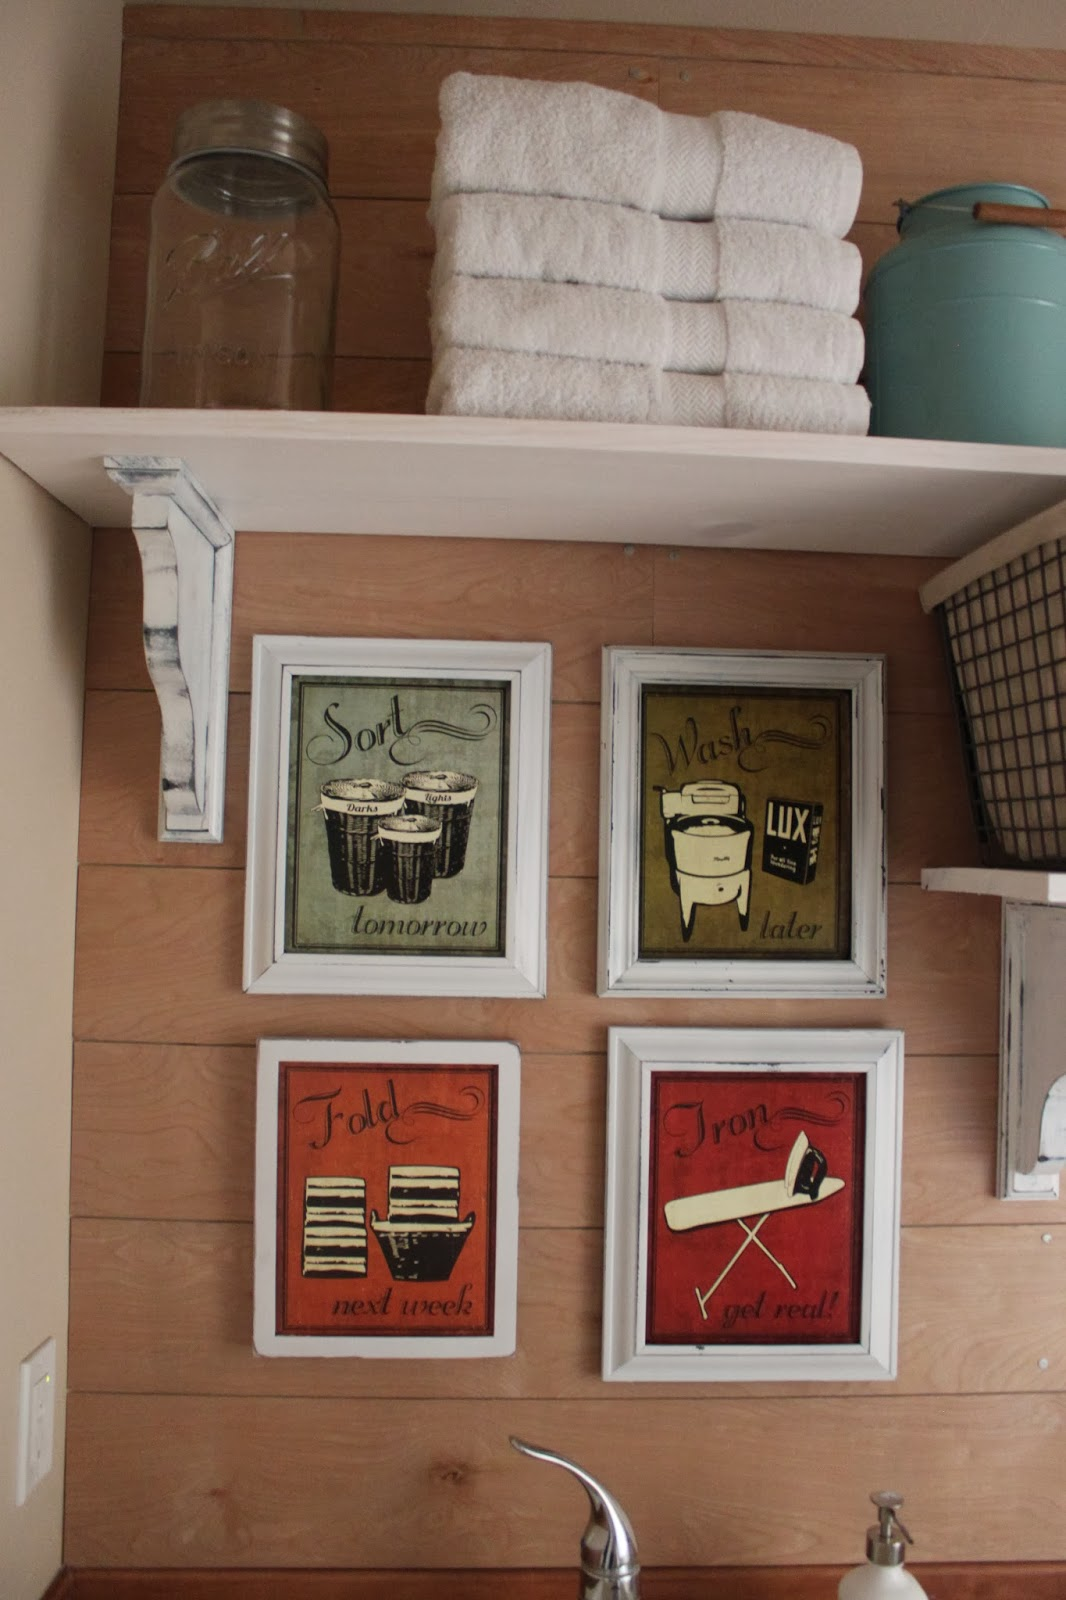 Laundry Room Frames Amusing Pineplace Laundry Room Decorating Inspiration